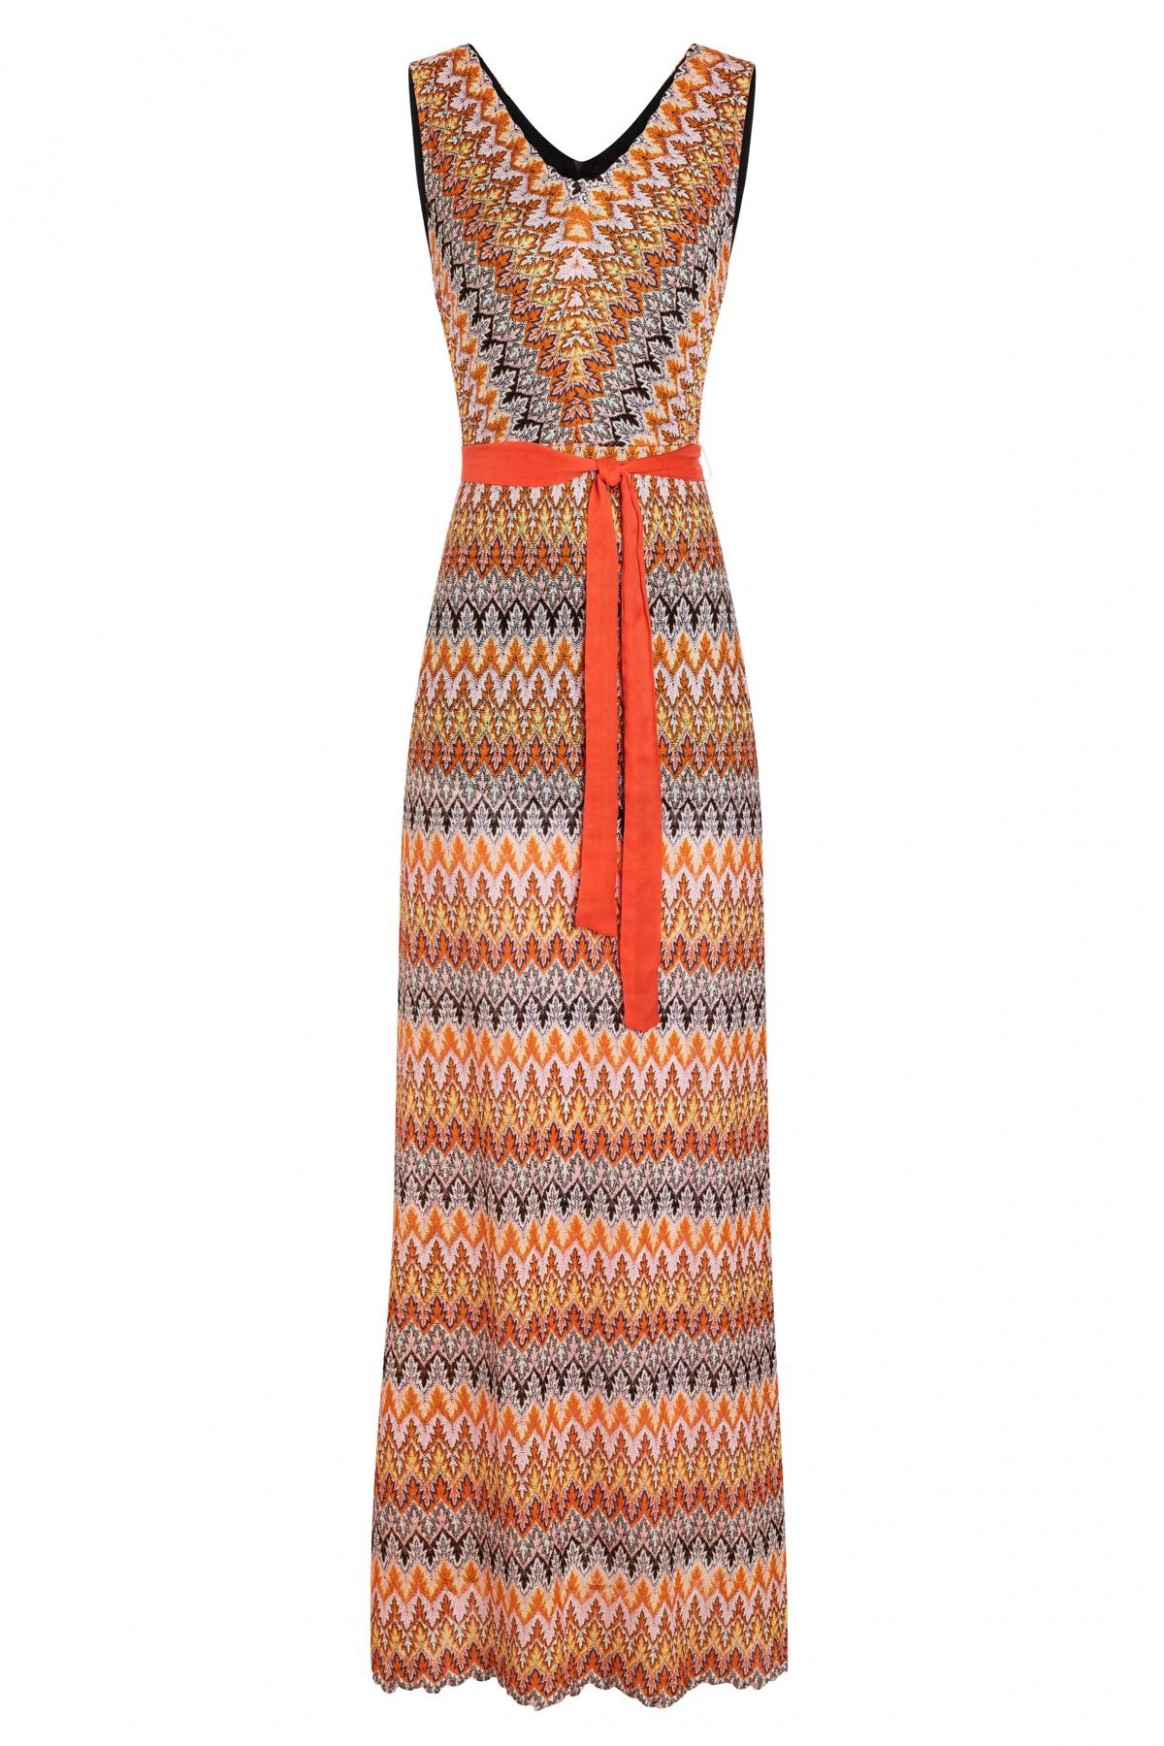 Sleeveless maxi dress Zunis from orange knit  Ana Alcazar